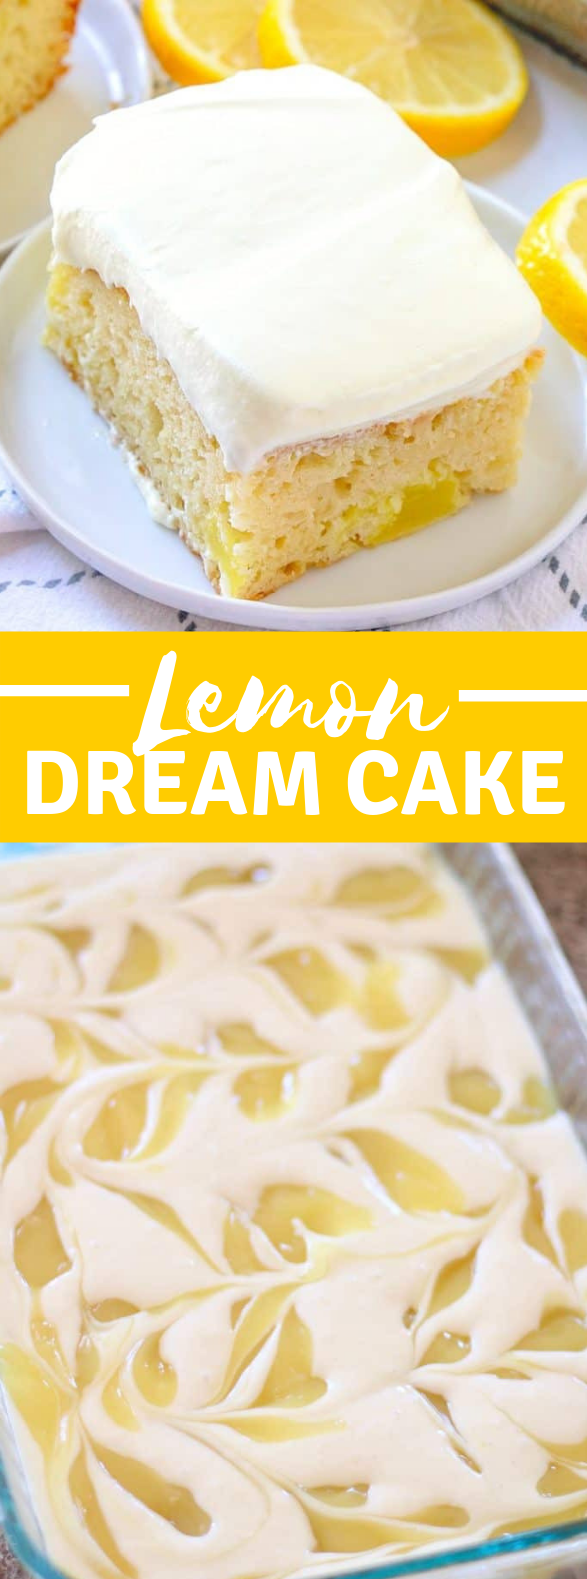 EASY LEMON DREAM CAKE  #desserts #familyrecipe